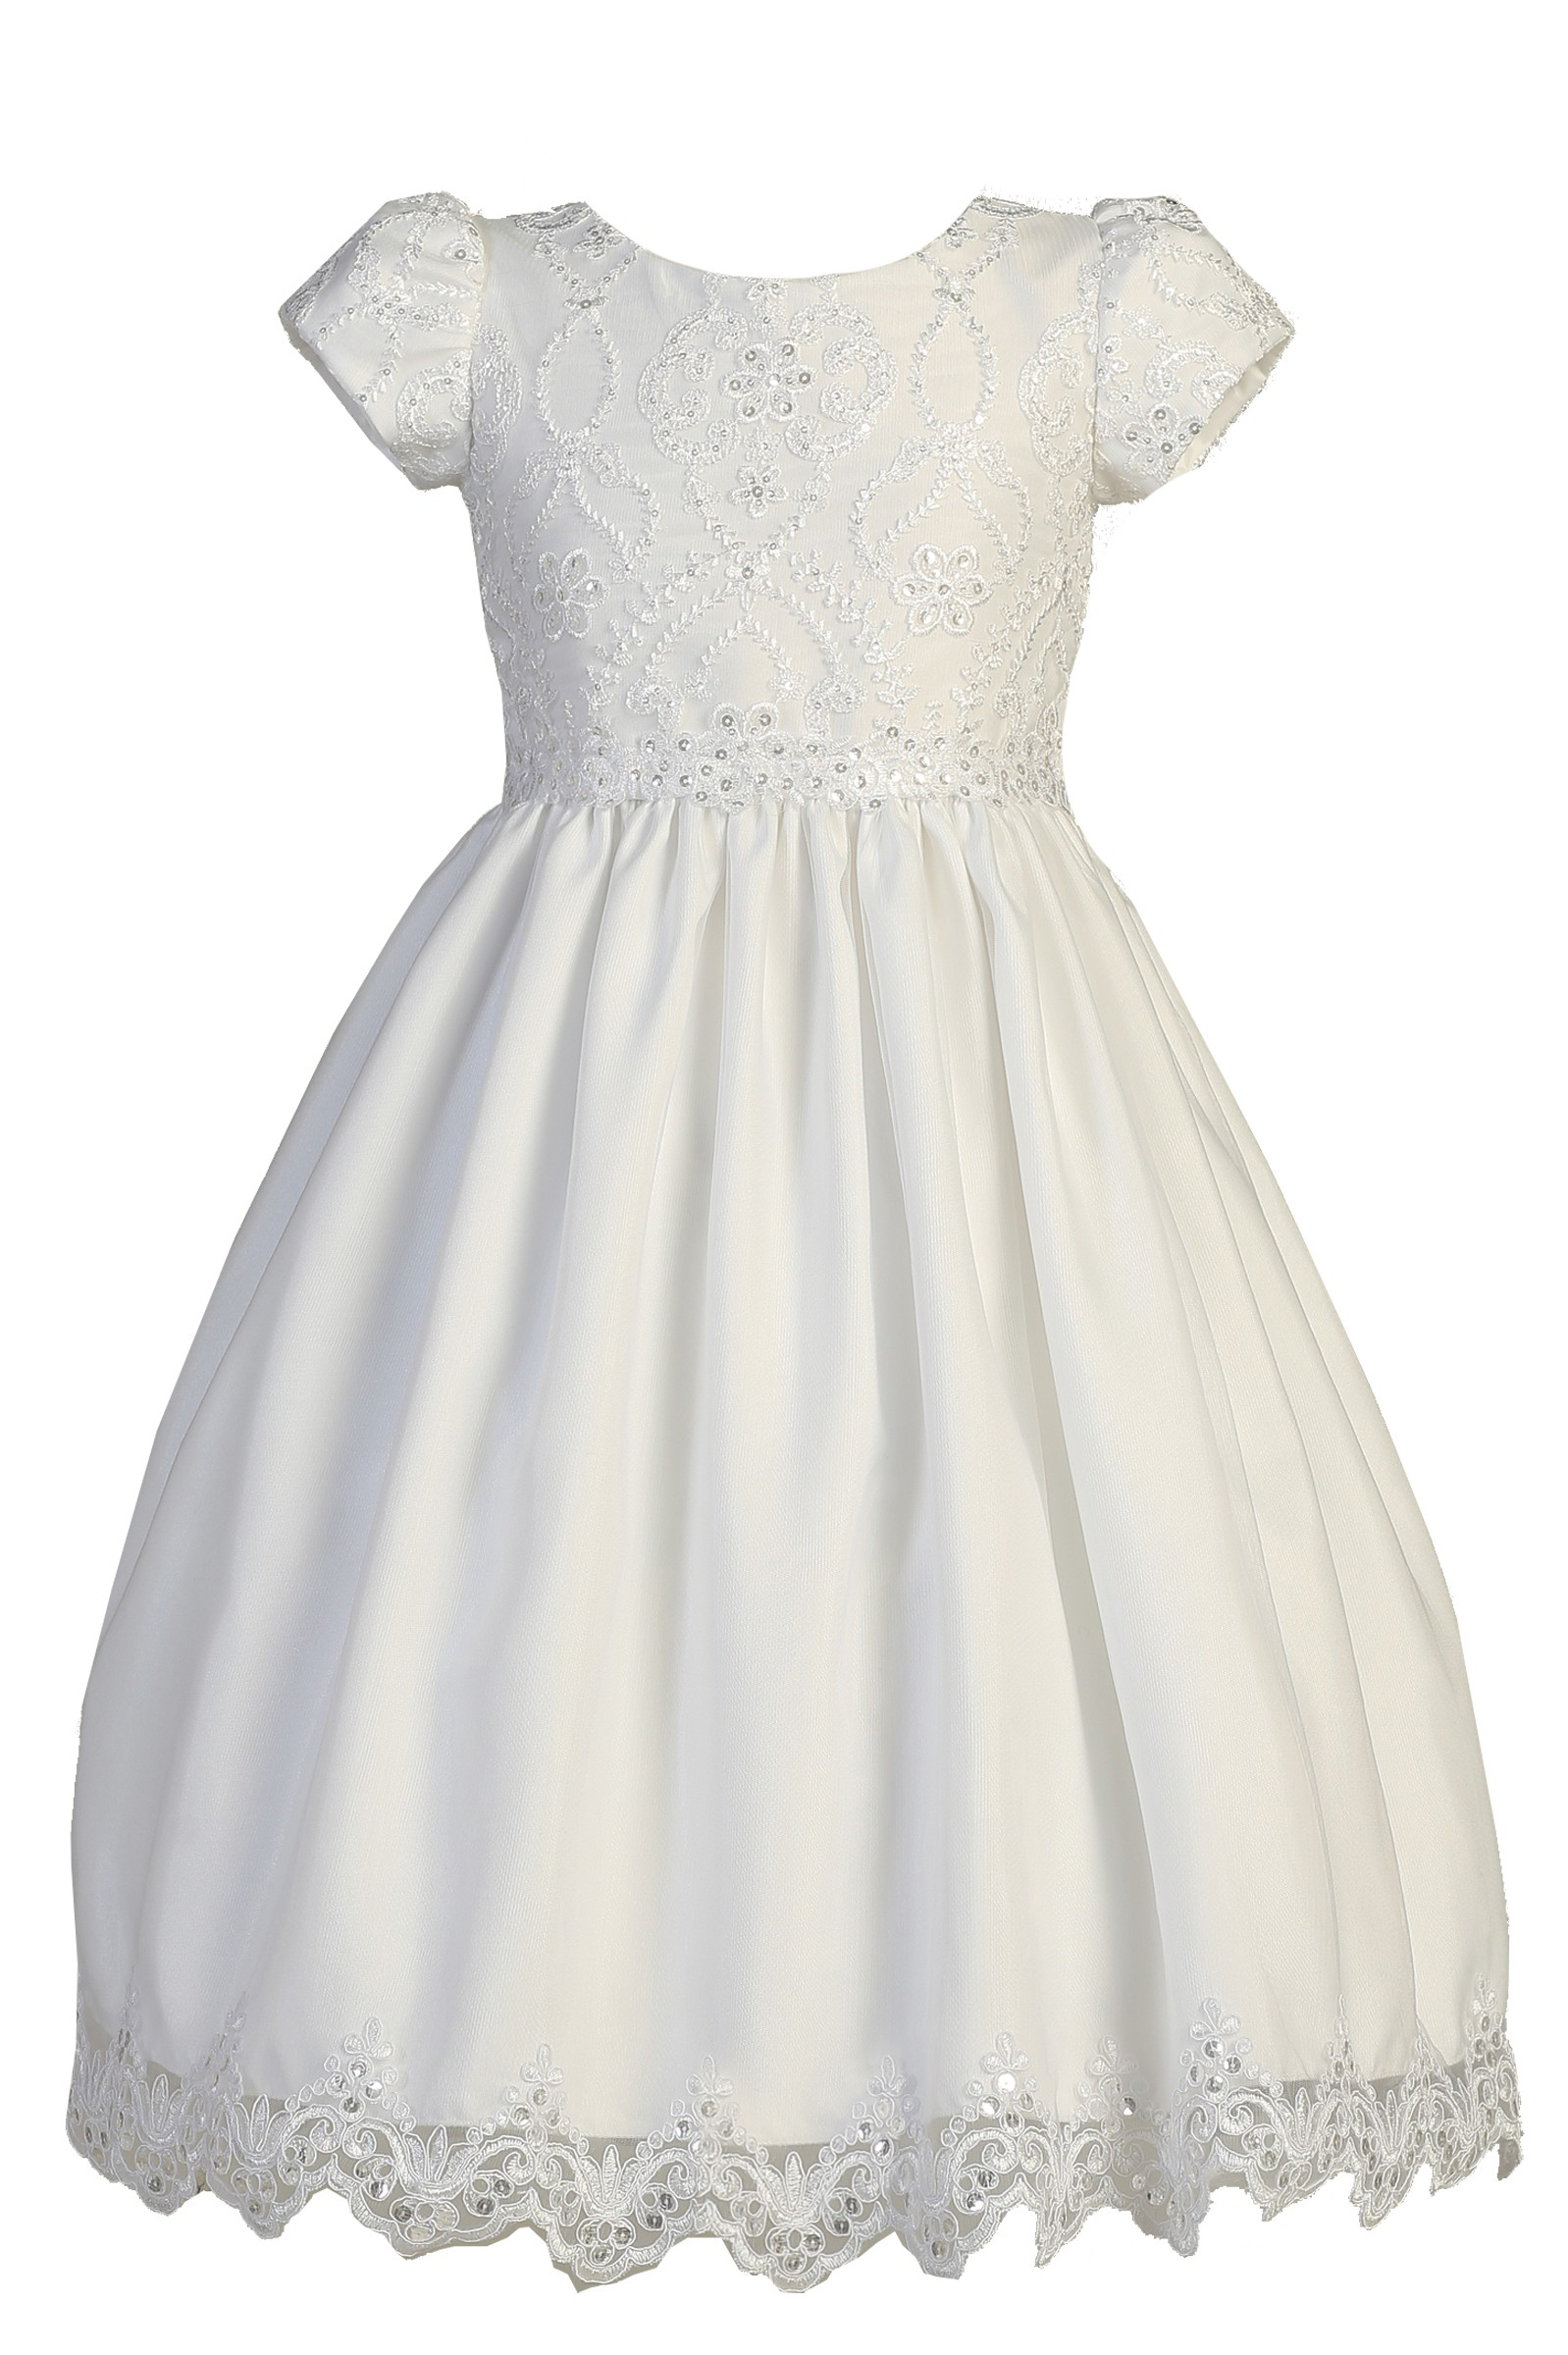 Lito - Girls White Short Sleeve Embroidered Lace Plus Size Communion Dress  - Walmart.com